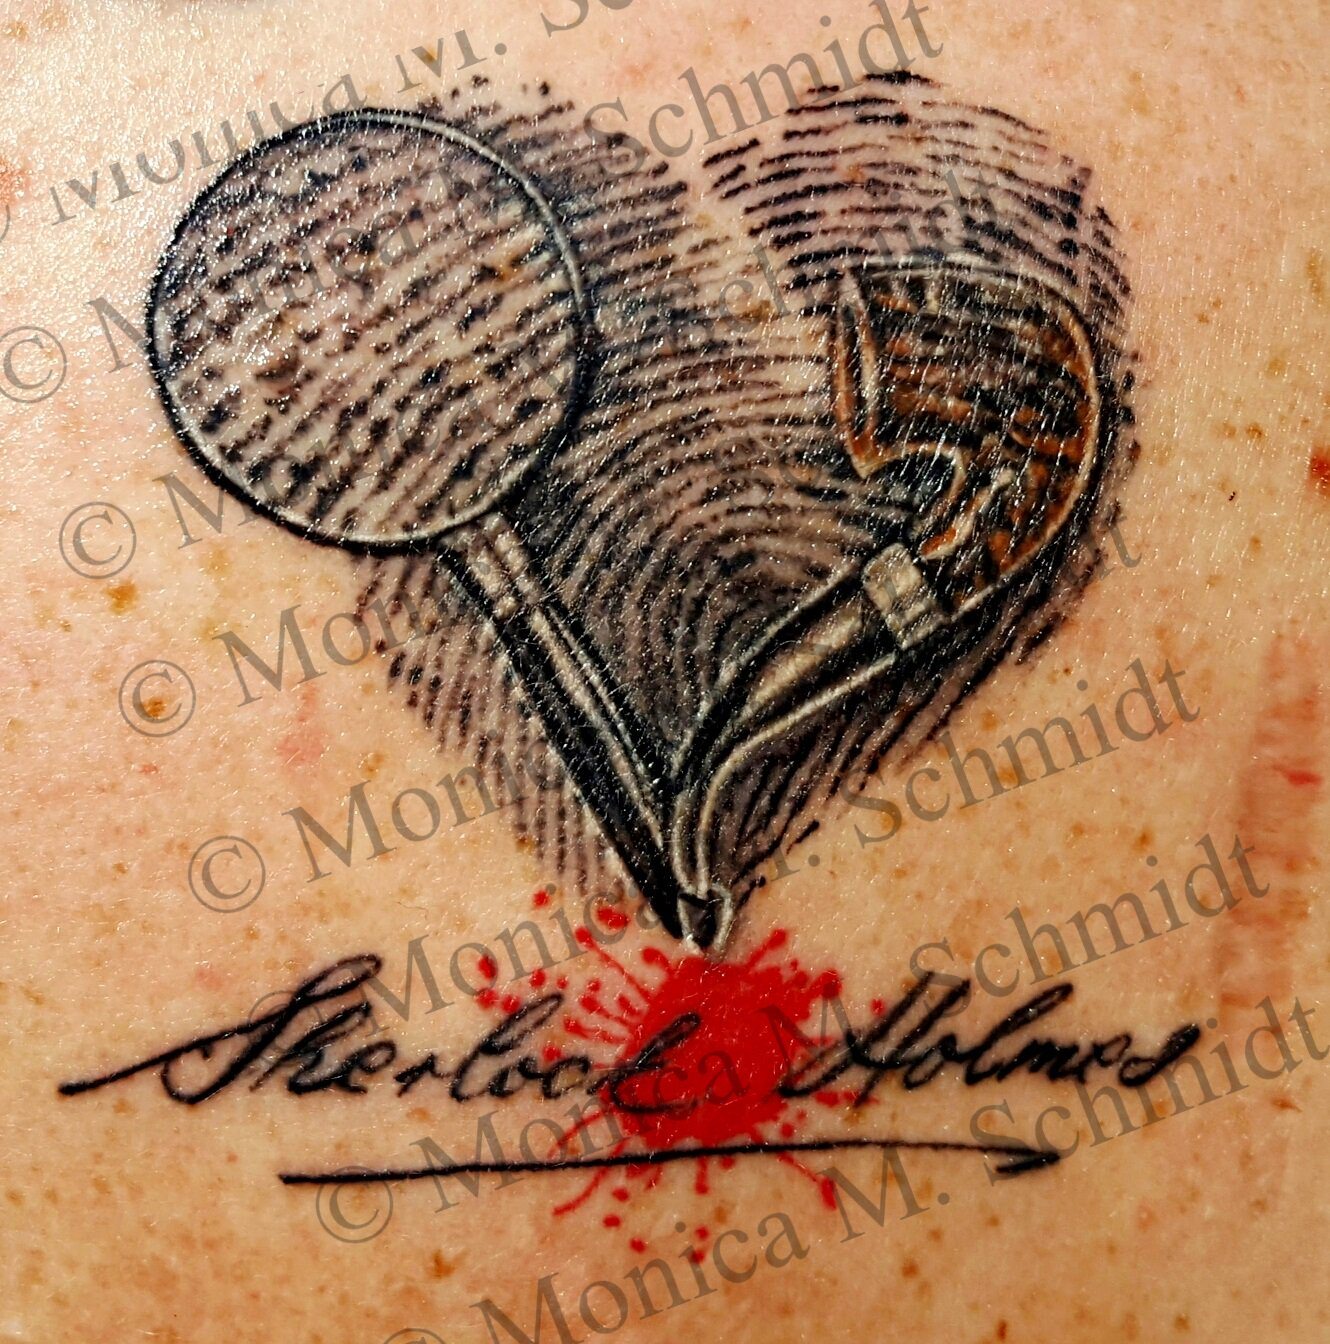 a1e2e51b6 This tattoo is on the right shoulder of Monica Schmidt. The fingerprints  are Monica's own, and the pipe is the Sherlock Holmes model from Peterson.